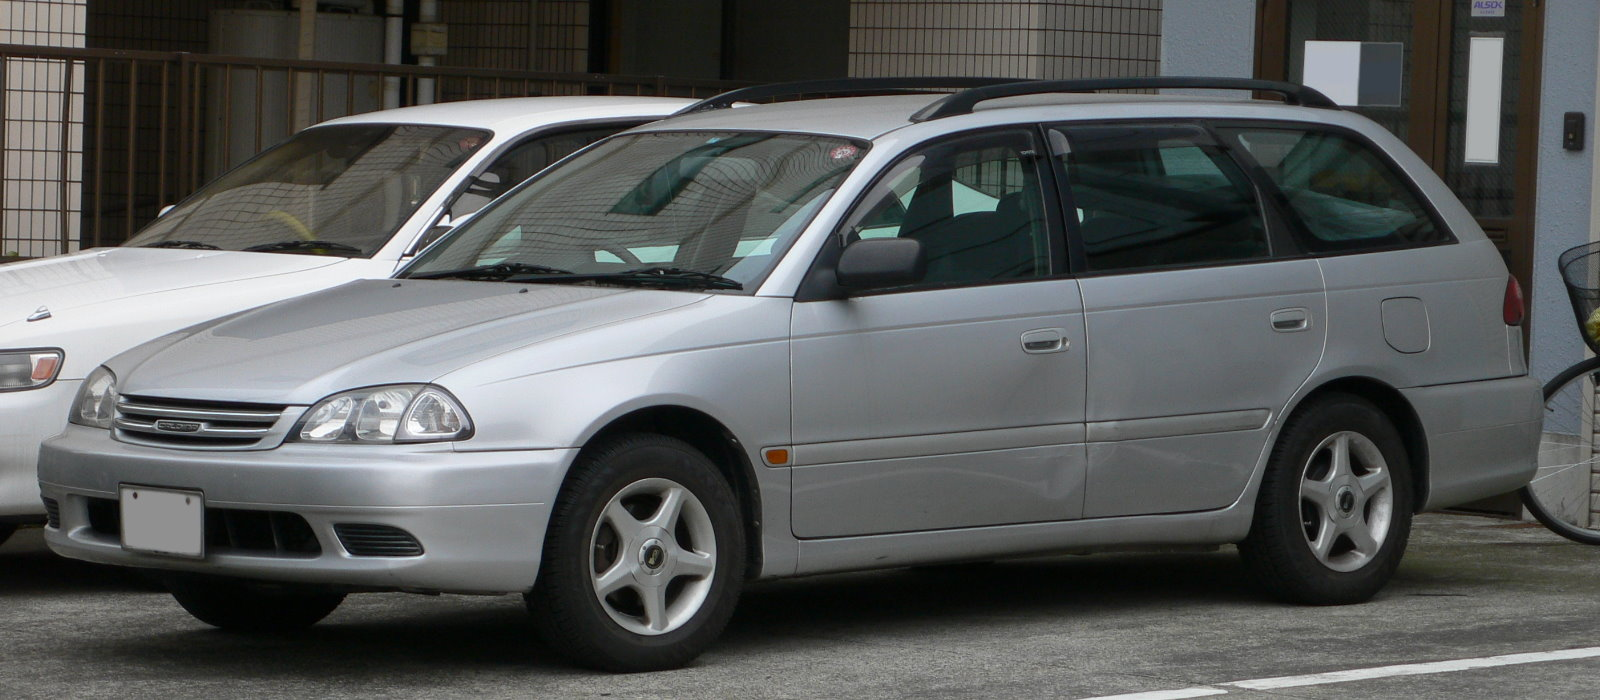 Toyota Caldina I 1992 - 1995 Station wagon 5 door #3